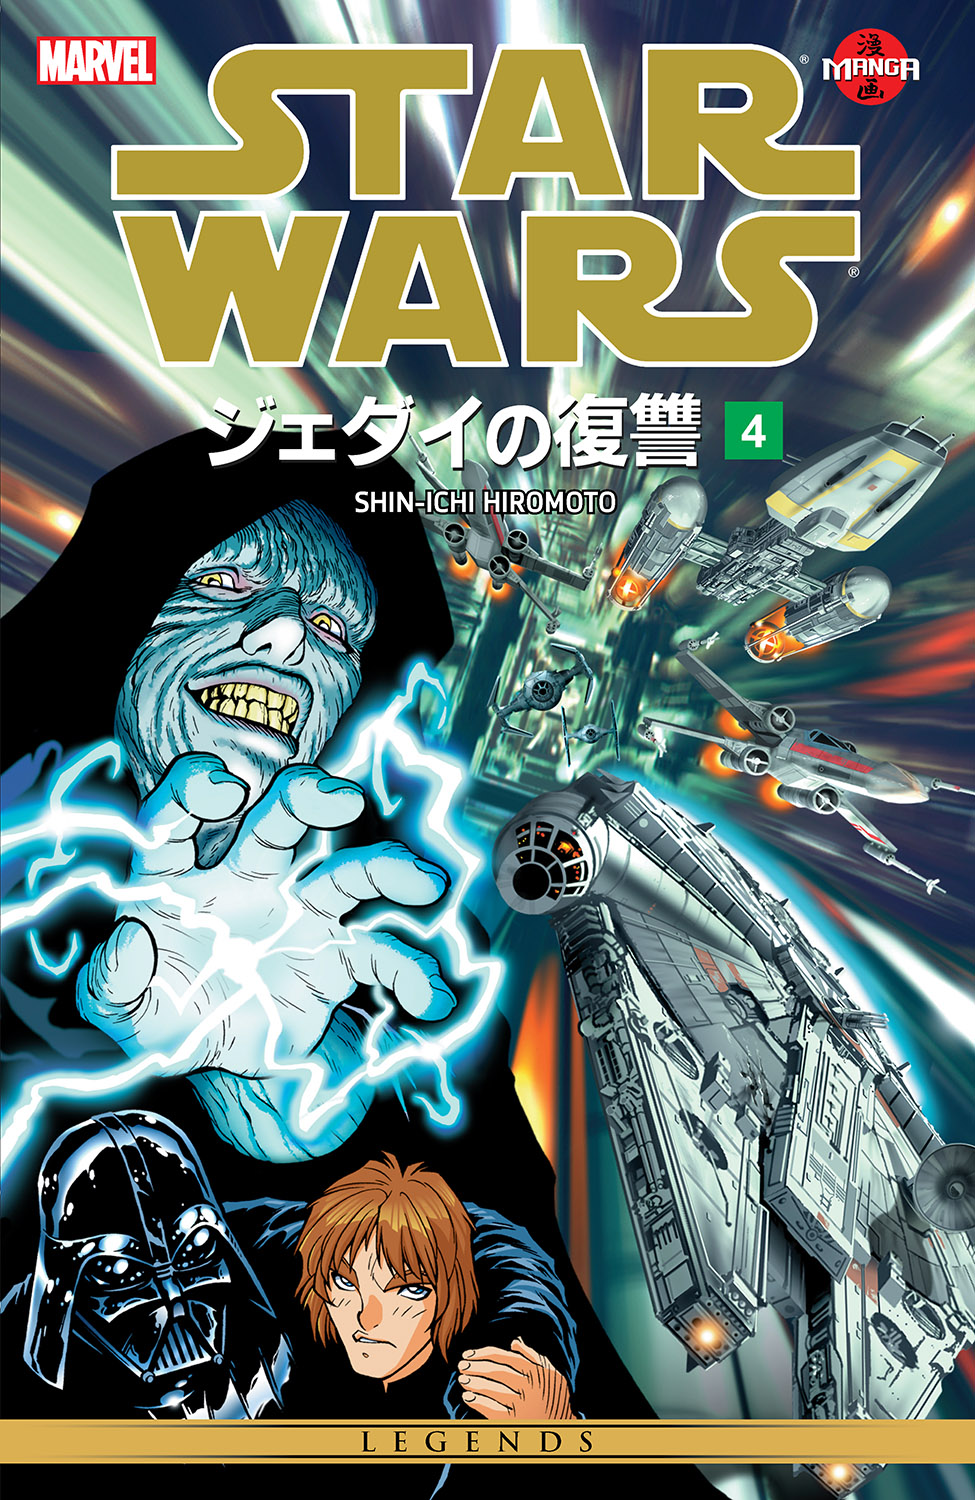 Star Wars: Return Of The Jedi Manga (1999) #4